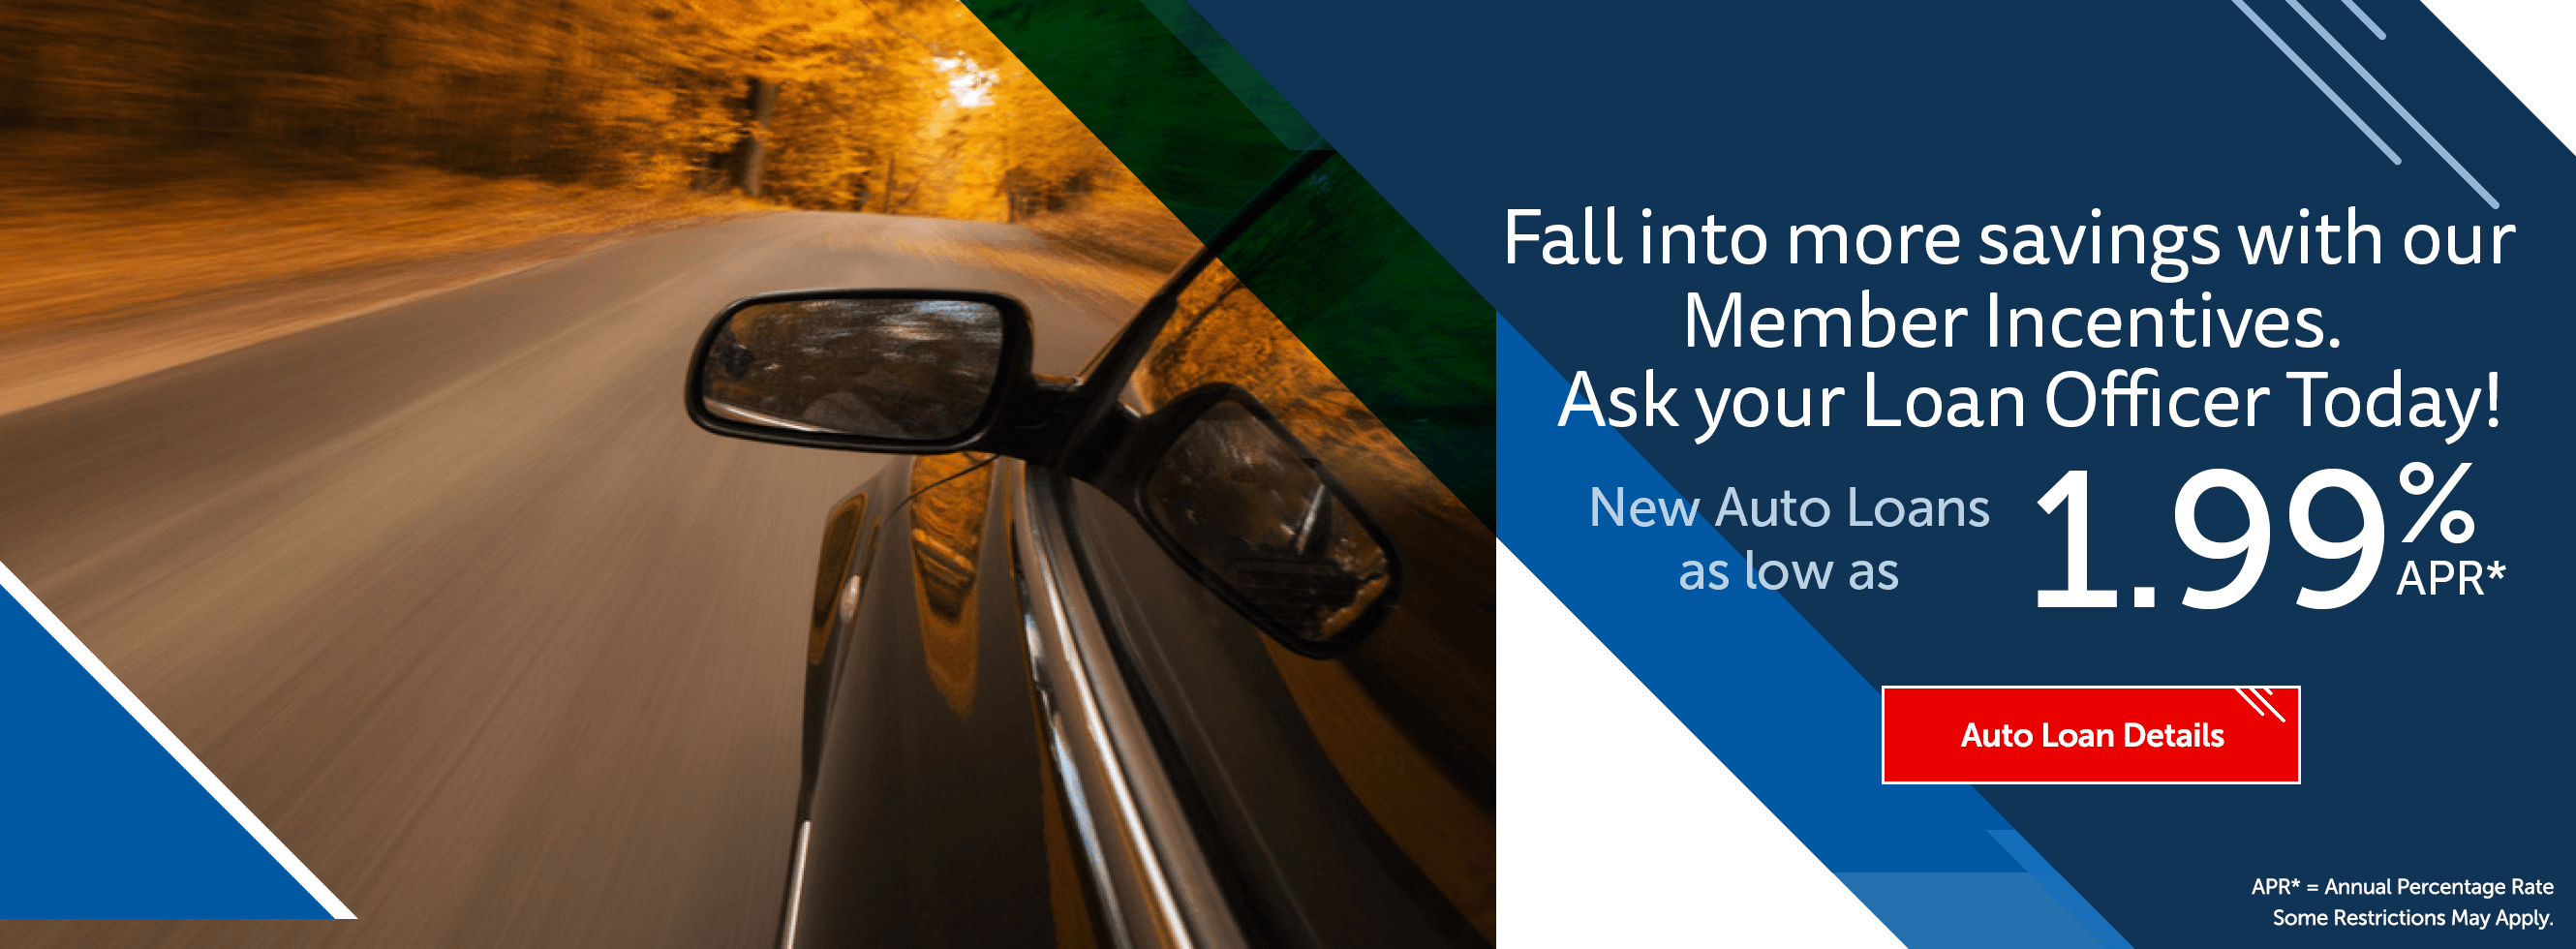 Fall into more savings with our Member Incentives. Ask your Loan Officer Today! New auto loans as low as 1.99%. Auto loan details.